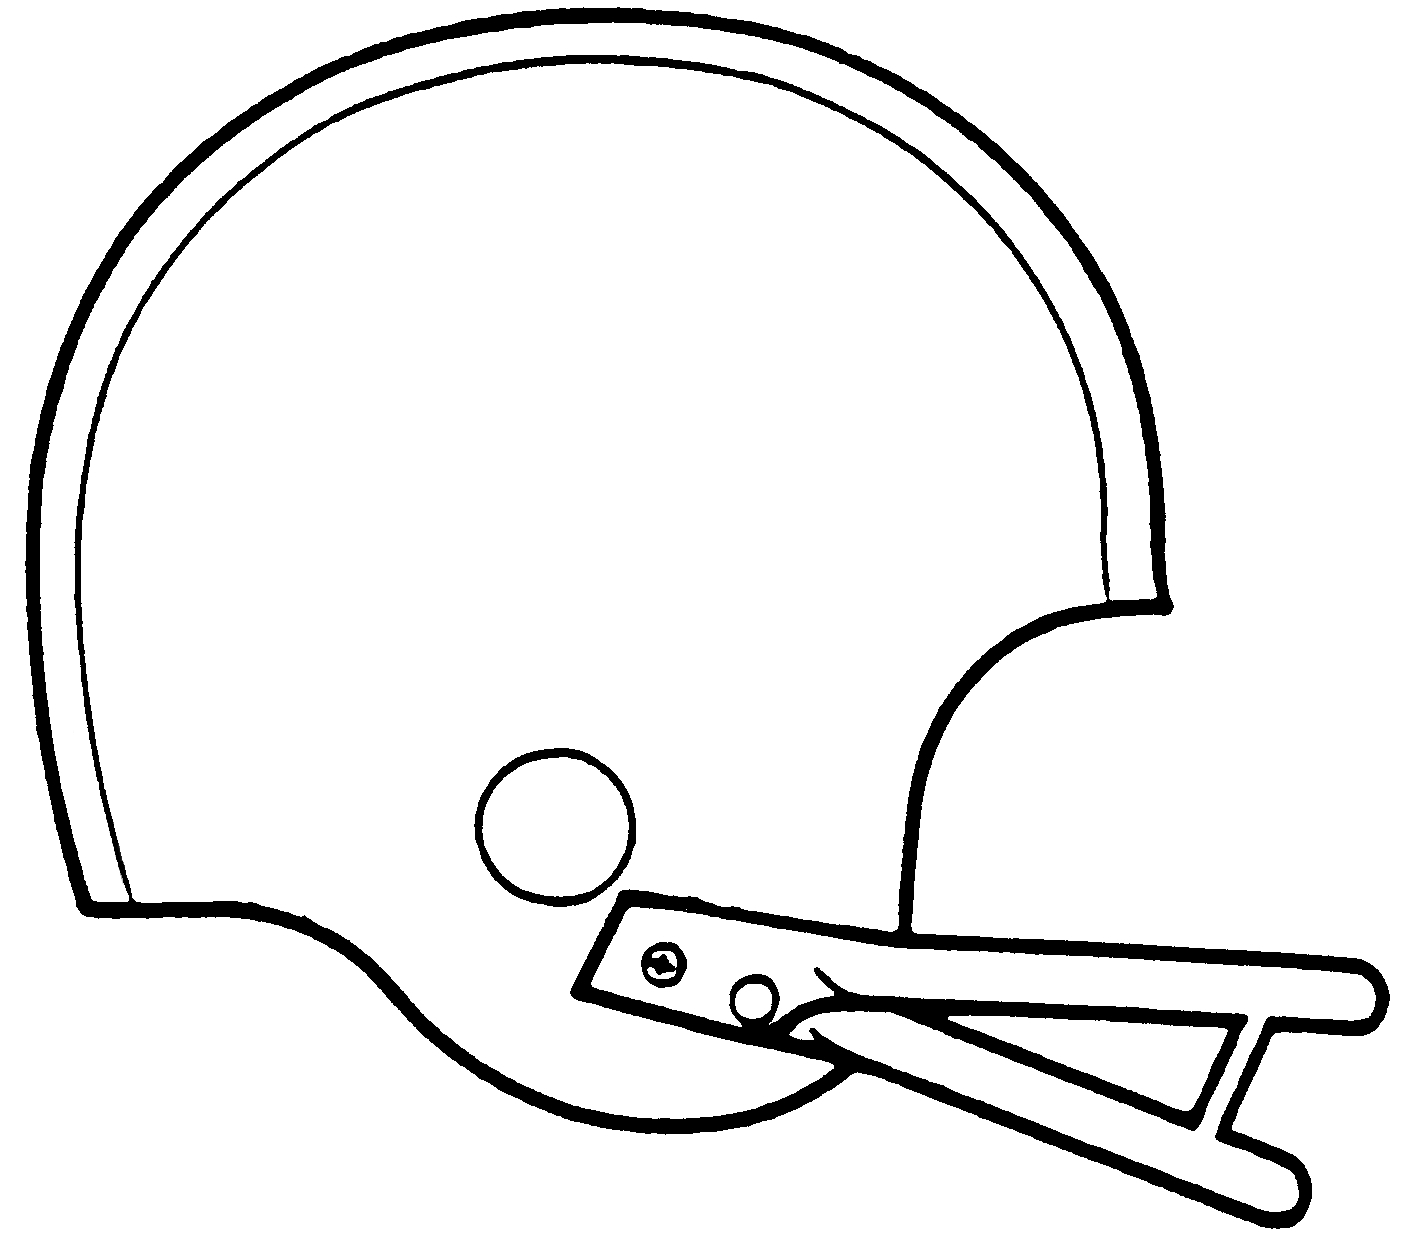 Adult Cute Design Your Own Coloring Pages Images cute coloring pages or print this one and design your own helmet logo gallery images